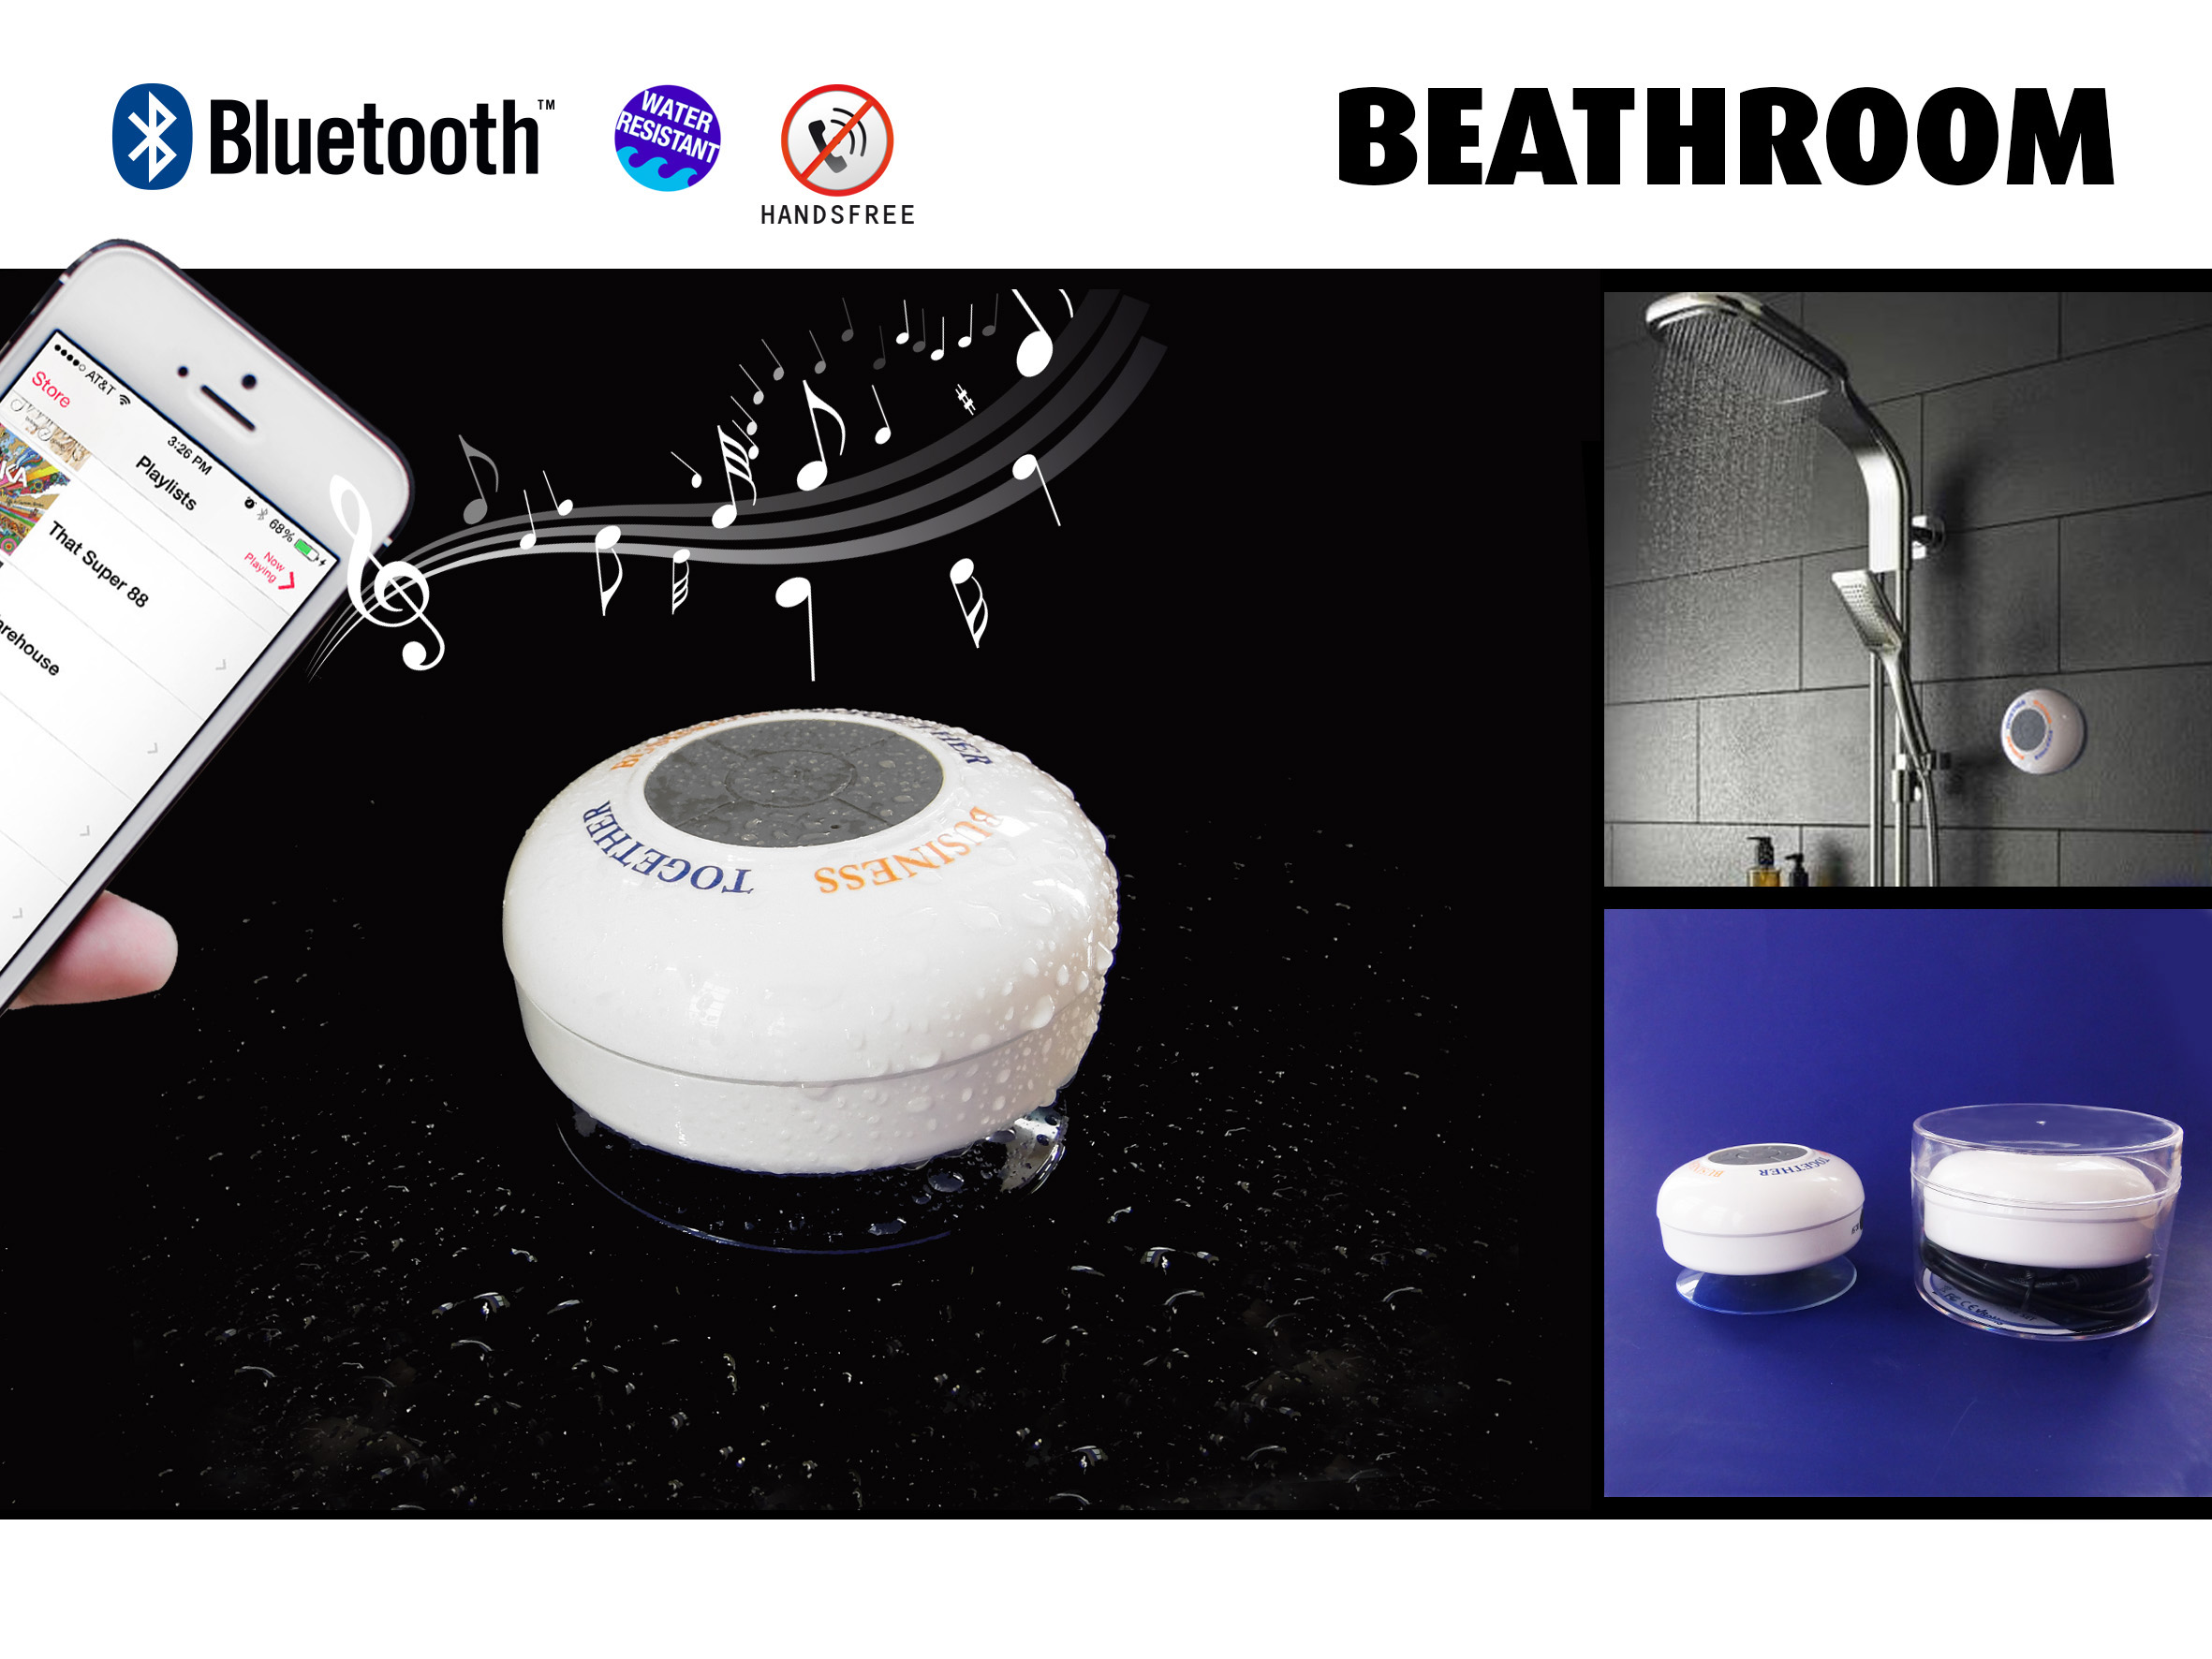 BEATHROOM